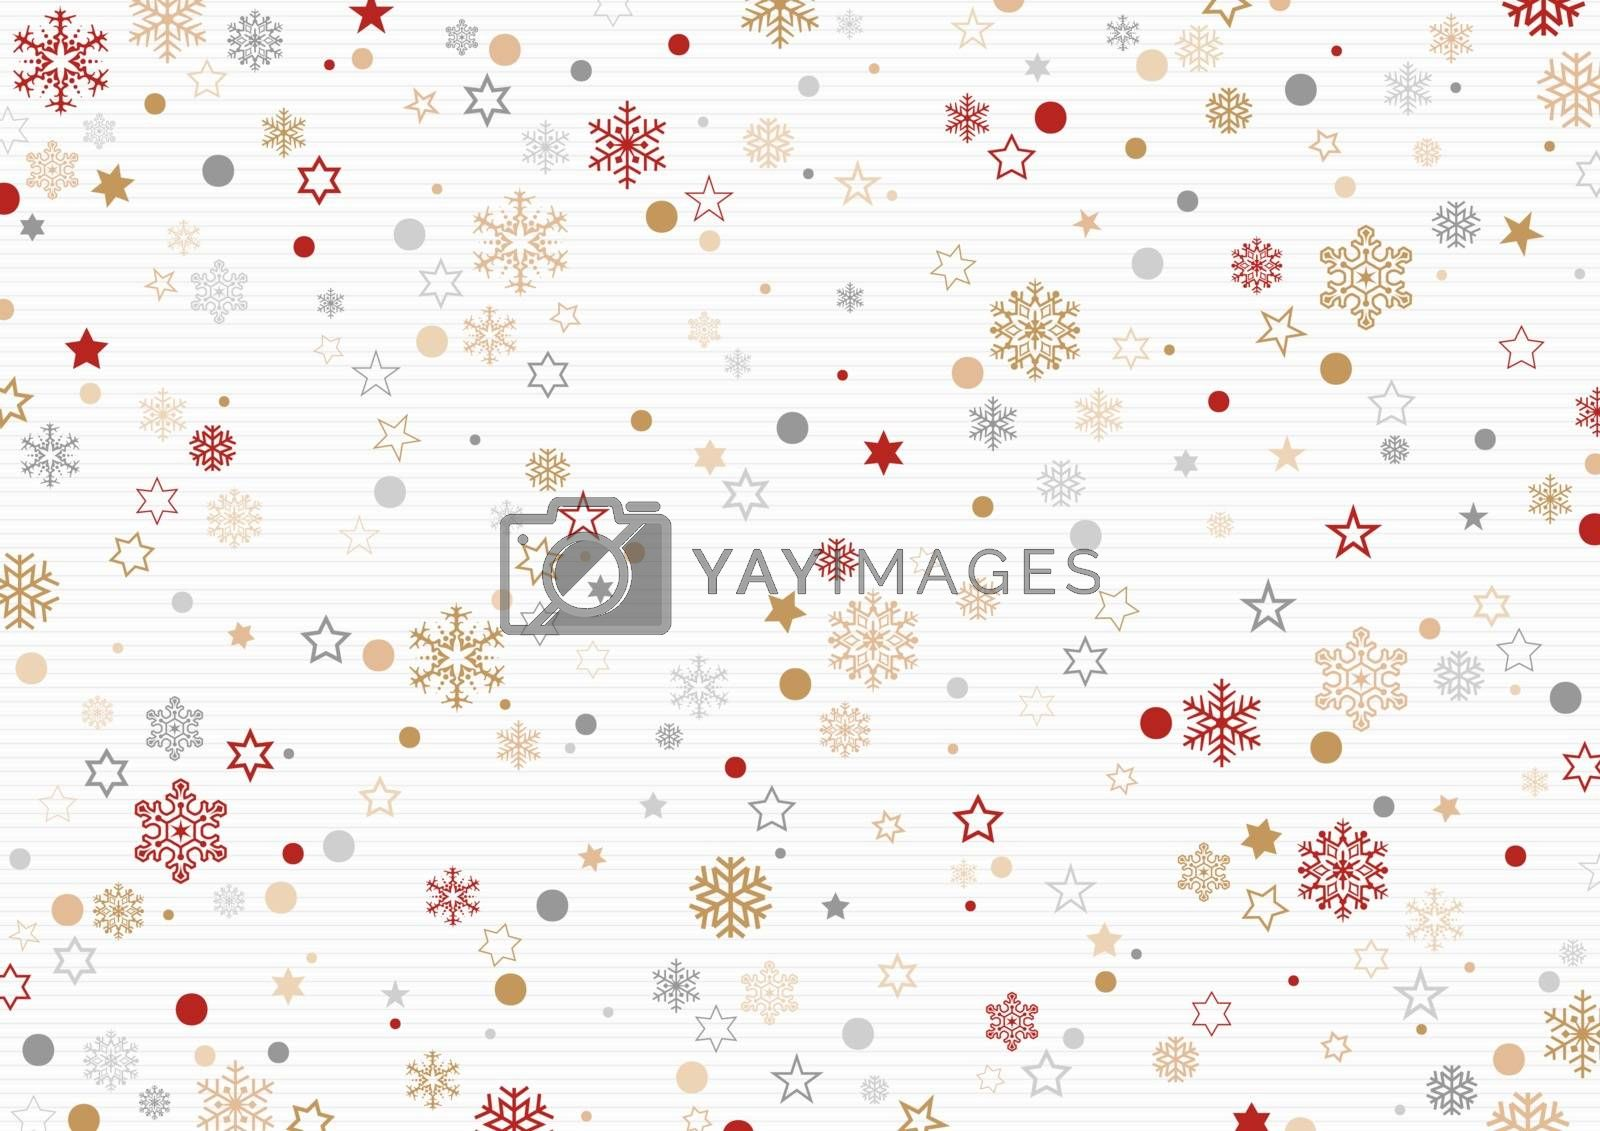 Christmas Pattern with Snowflakes and Stars on Striped Background - Festive Illustration for Your Xmas Graphic Design, Vector